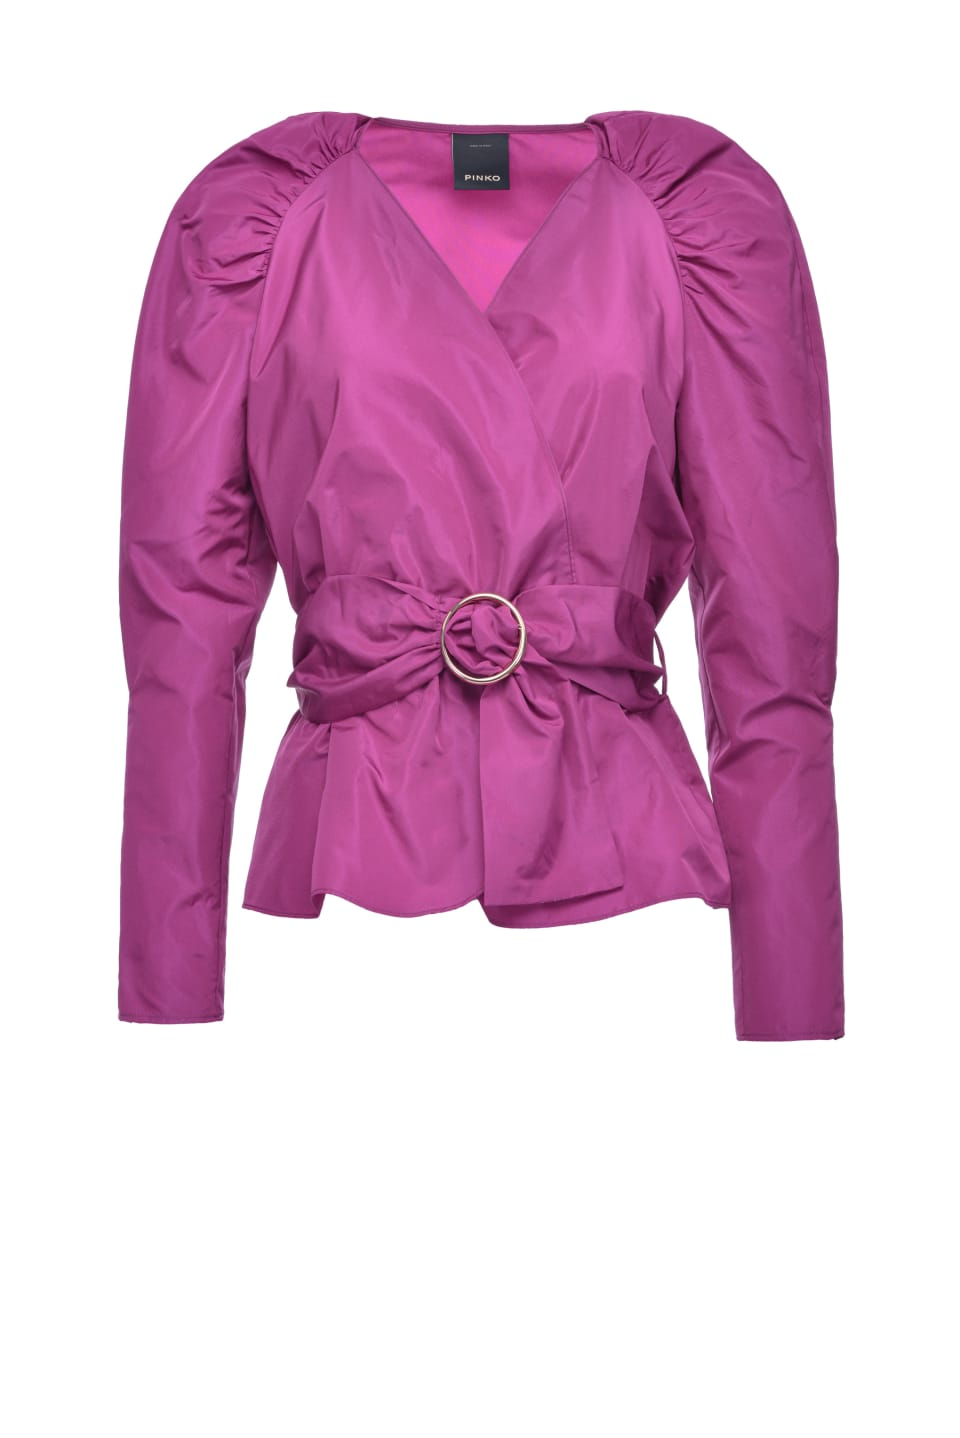 Taffeta blouse with belt - Pinko